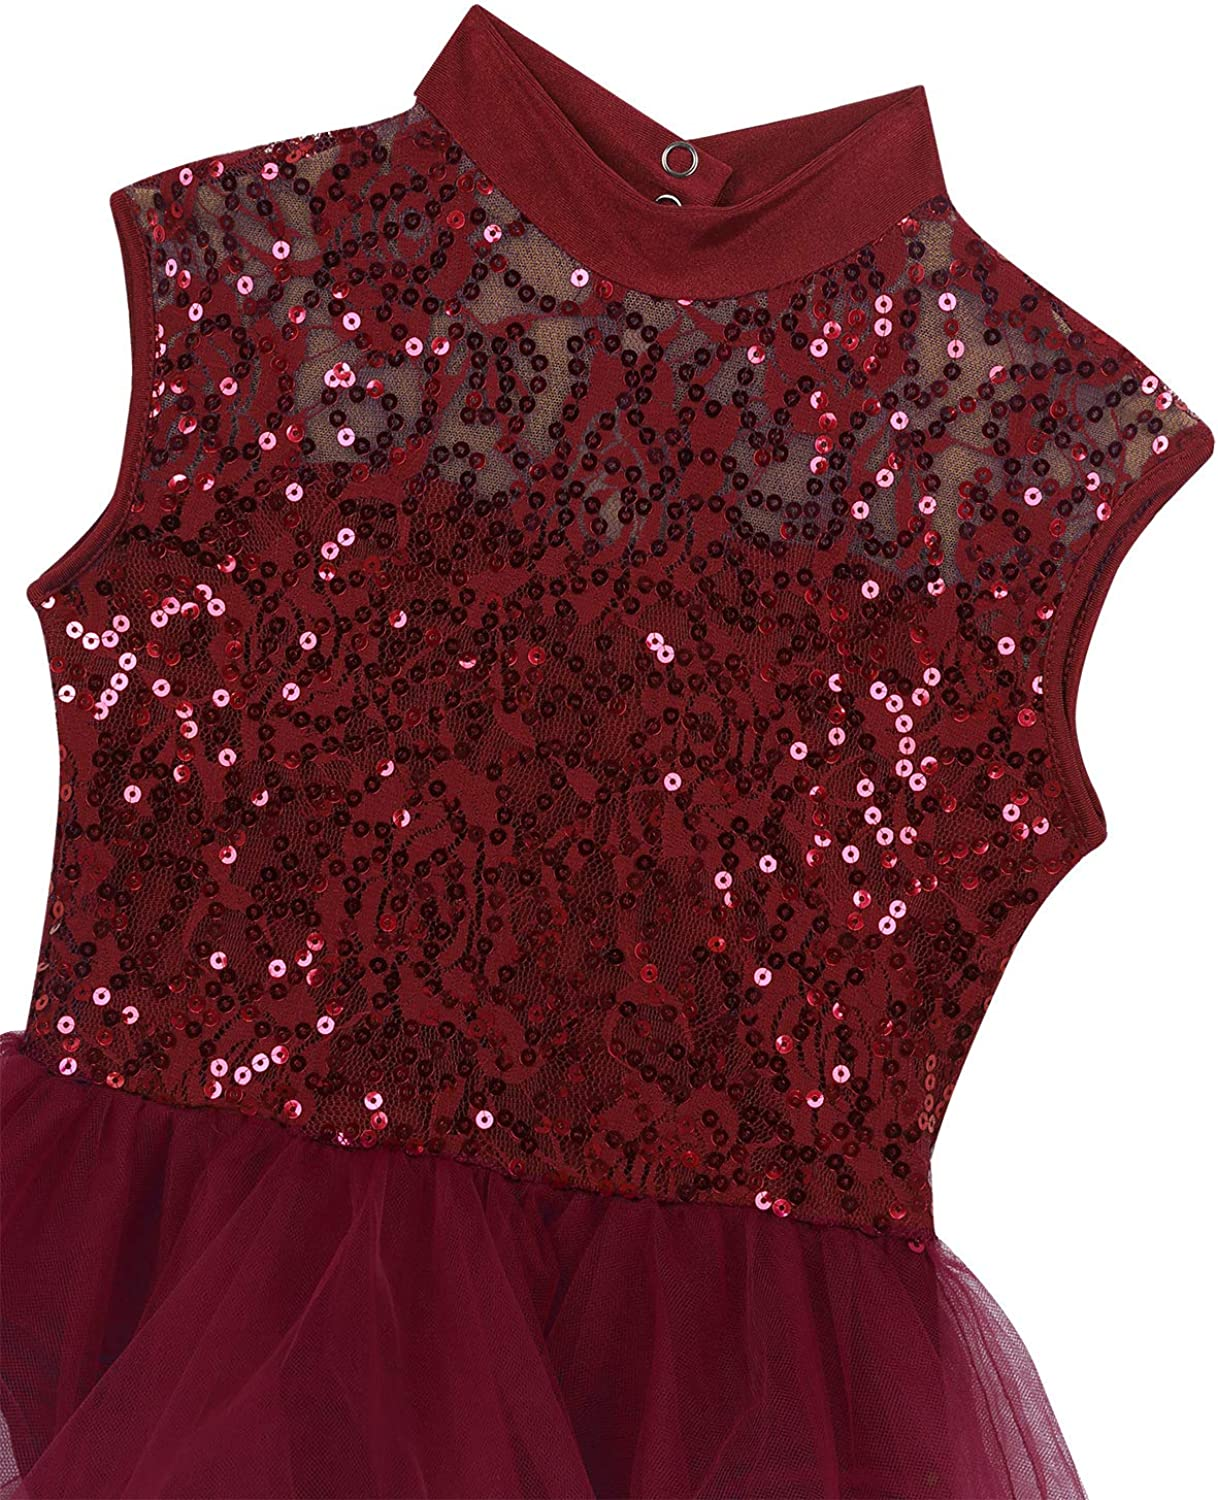 TiaoBug Girls Sequined Camisole Gym Ballet Dance Tutu Dress Sweetheart Ballerina Leotard Skirted Dancewear Costumes